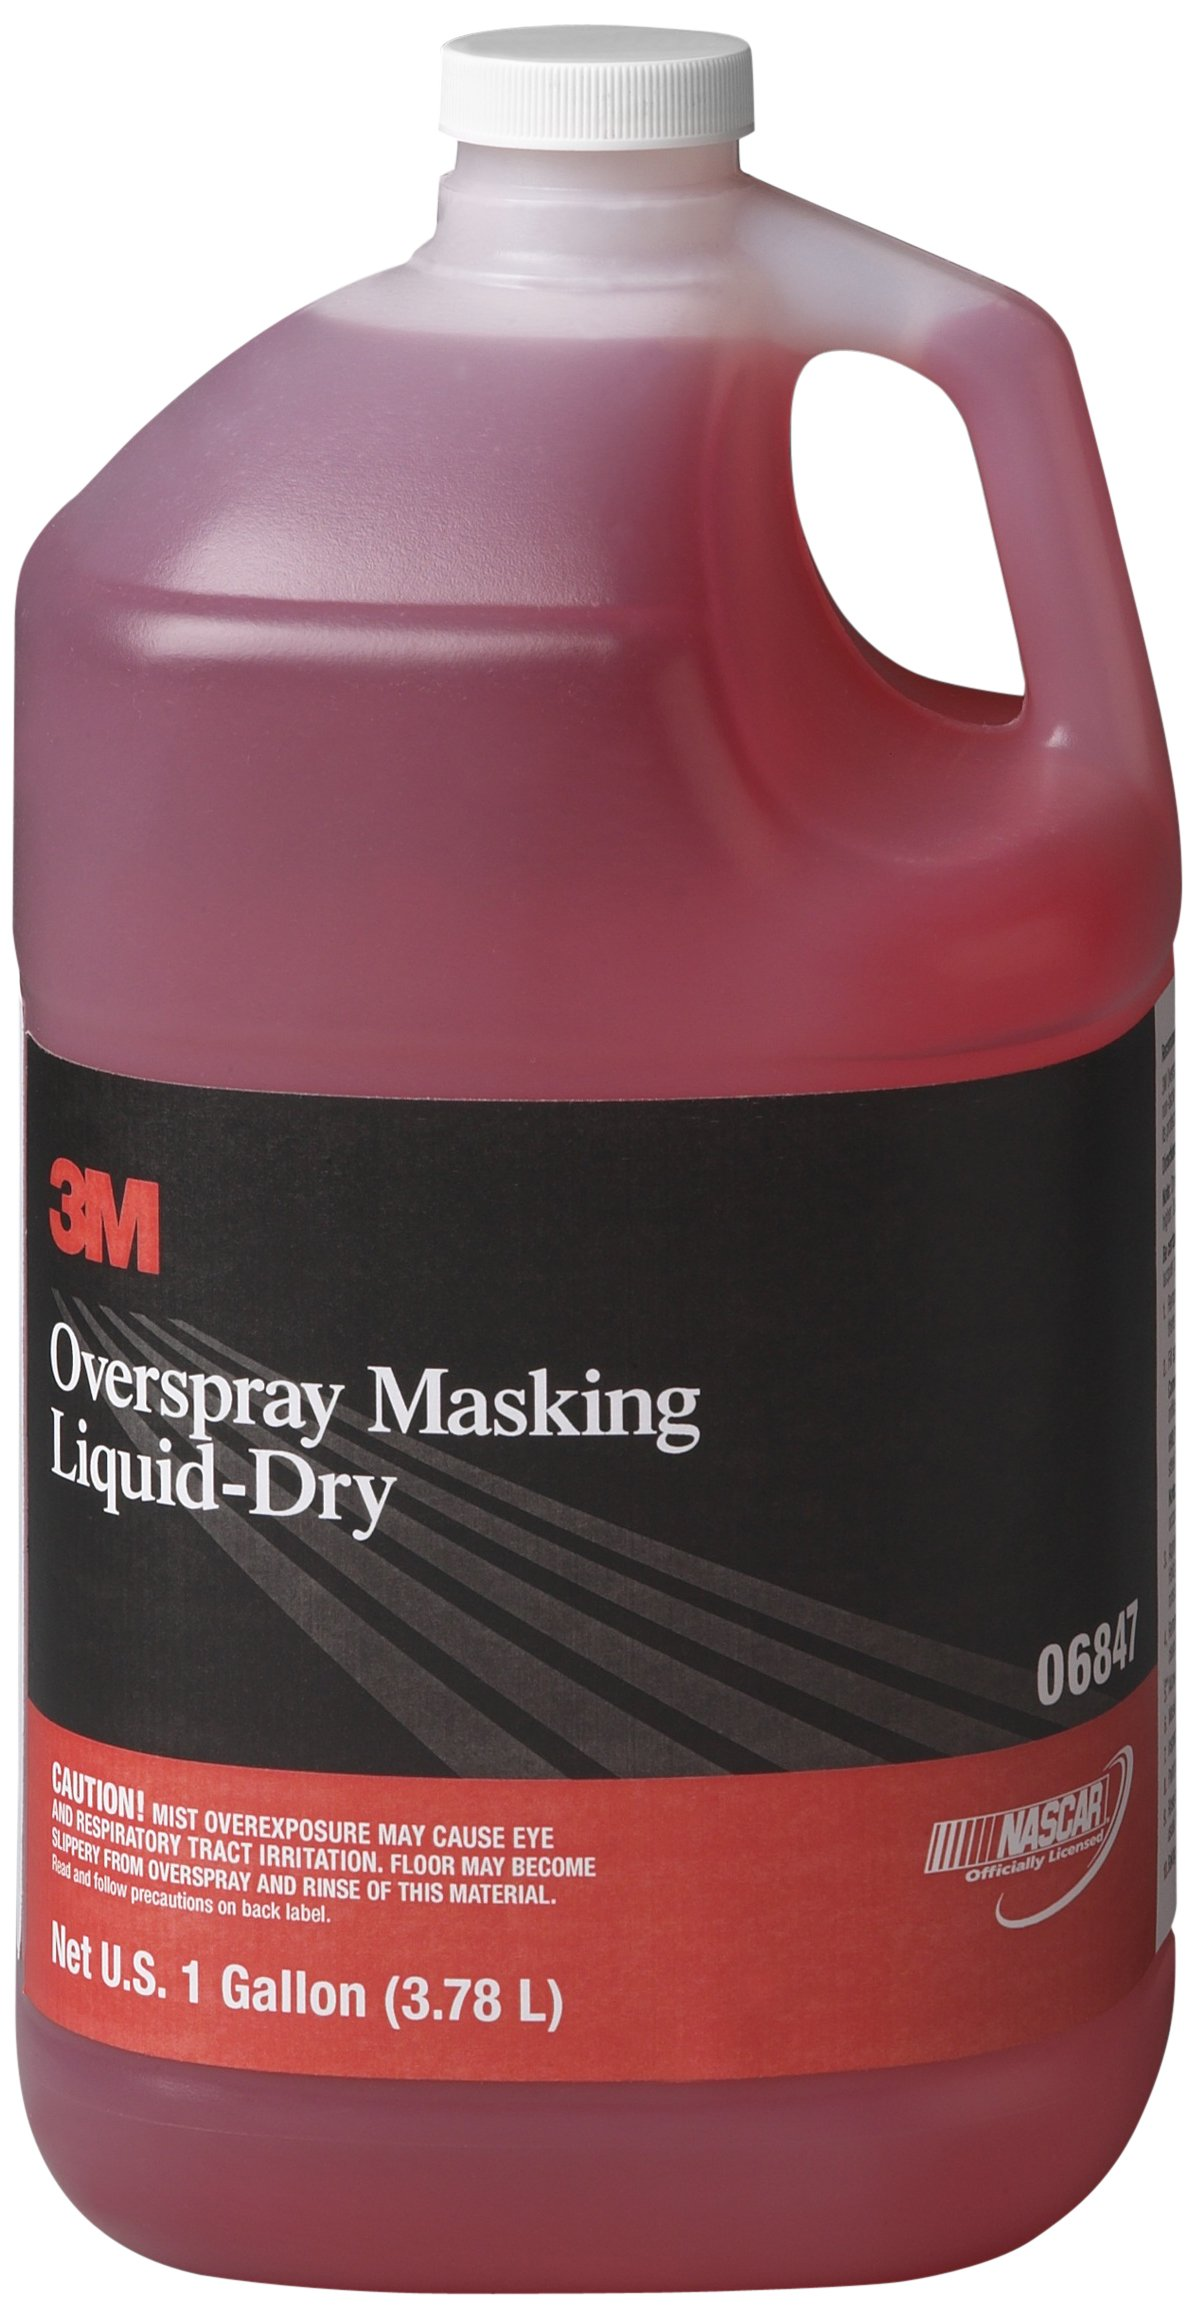 3M 06847 Overspray Masking Liquid-Dry - 1 Gallon by 3M